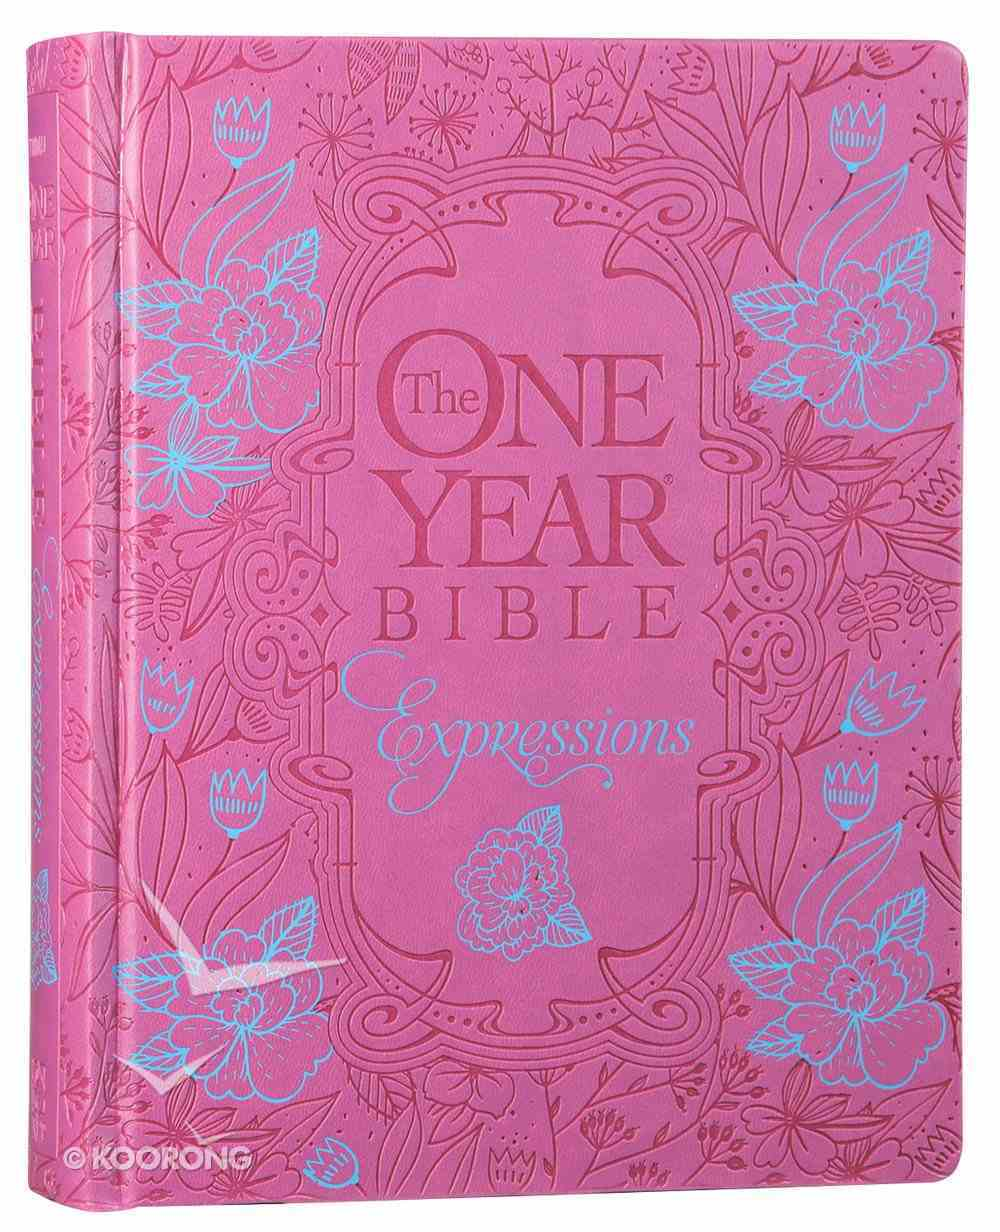 NLT One Year Bible Expressions Pink Flower Deluxe (Black Letter Edition) Imitation Leather Over Hardback